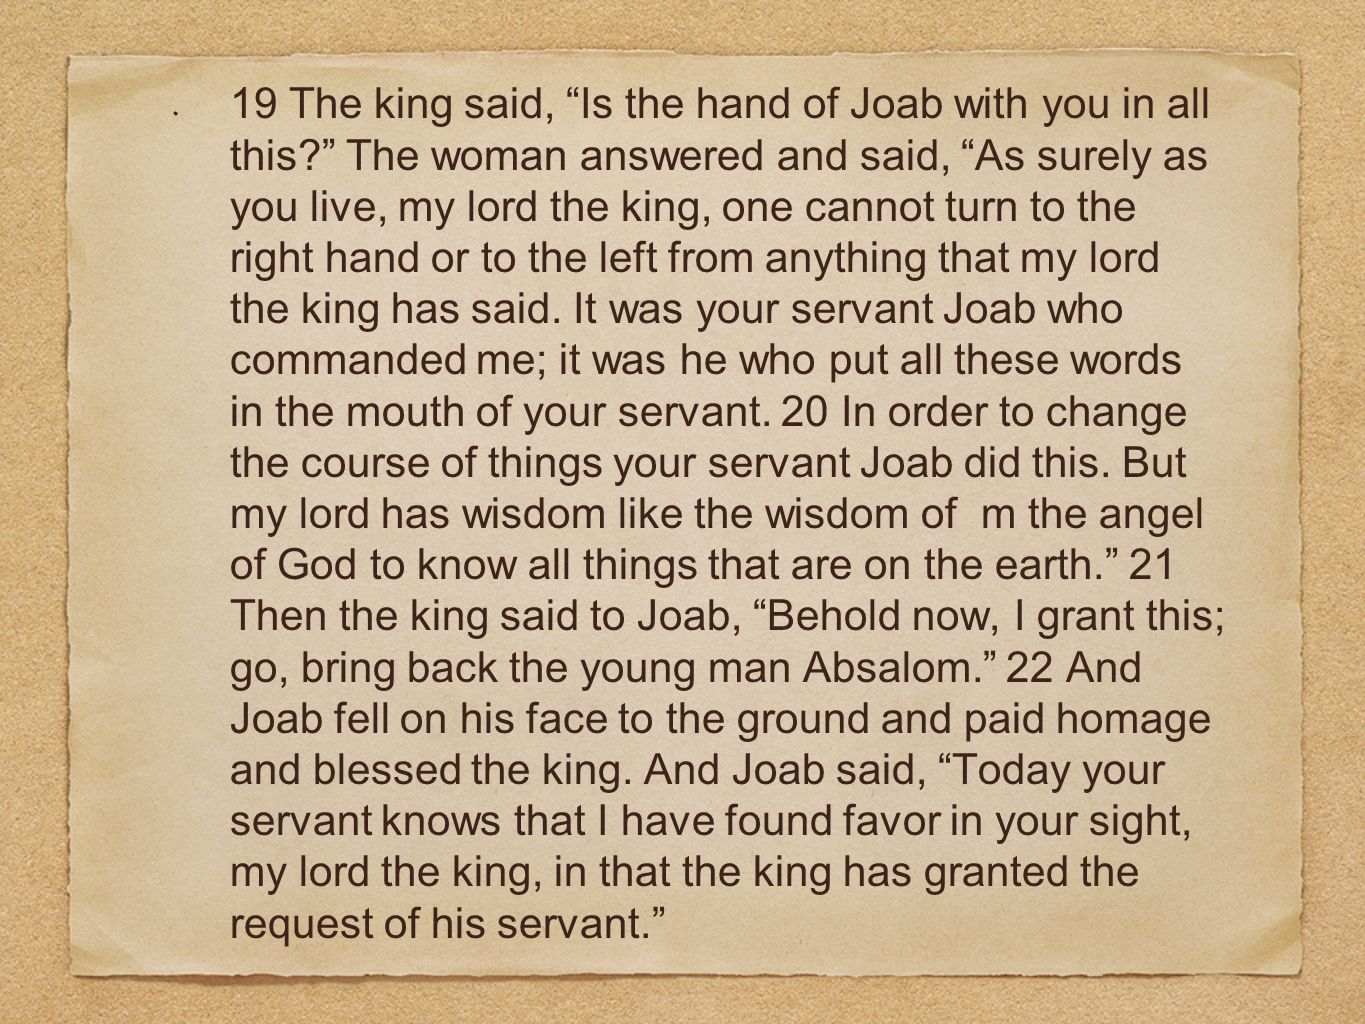 19 The king said, Is the hand of Joab with you in all this The woman answered and said, As surely as you live, my lord the king, one cannot turn to the right hand or to the left from anything that my lord the king has said.